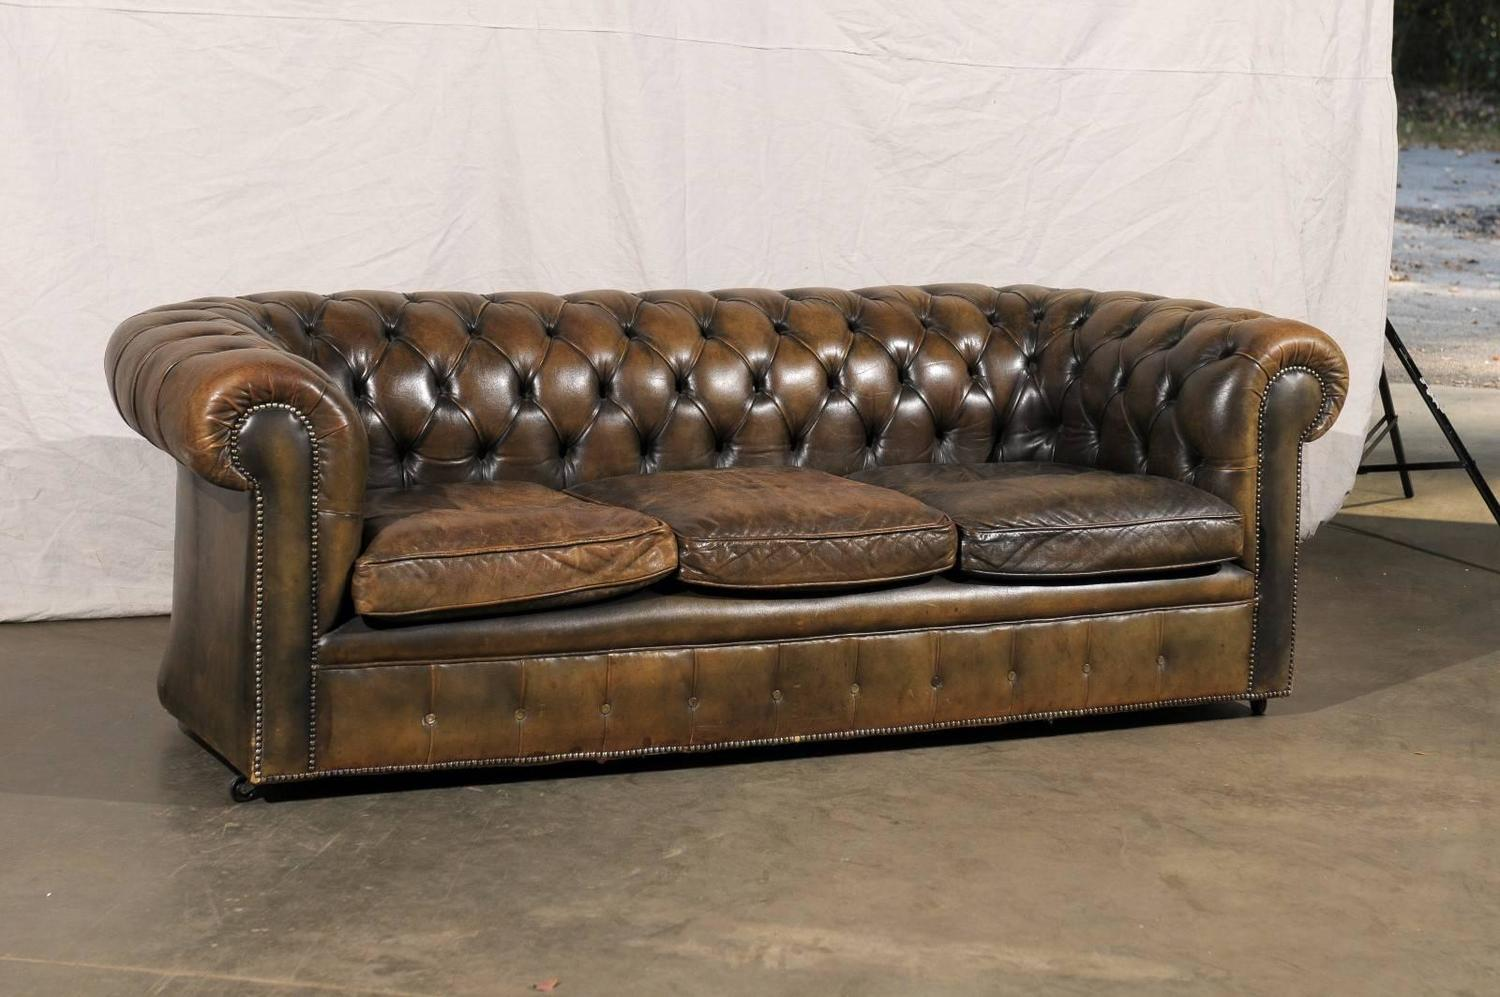 20th Century English Chesterfield Sofa For Sale at 1stdibs : 16BS024Dz from www.1stdibs.com size 1500 x 997 jpeg 145kB